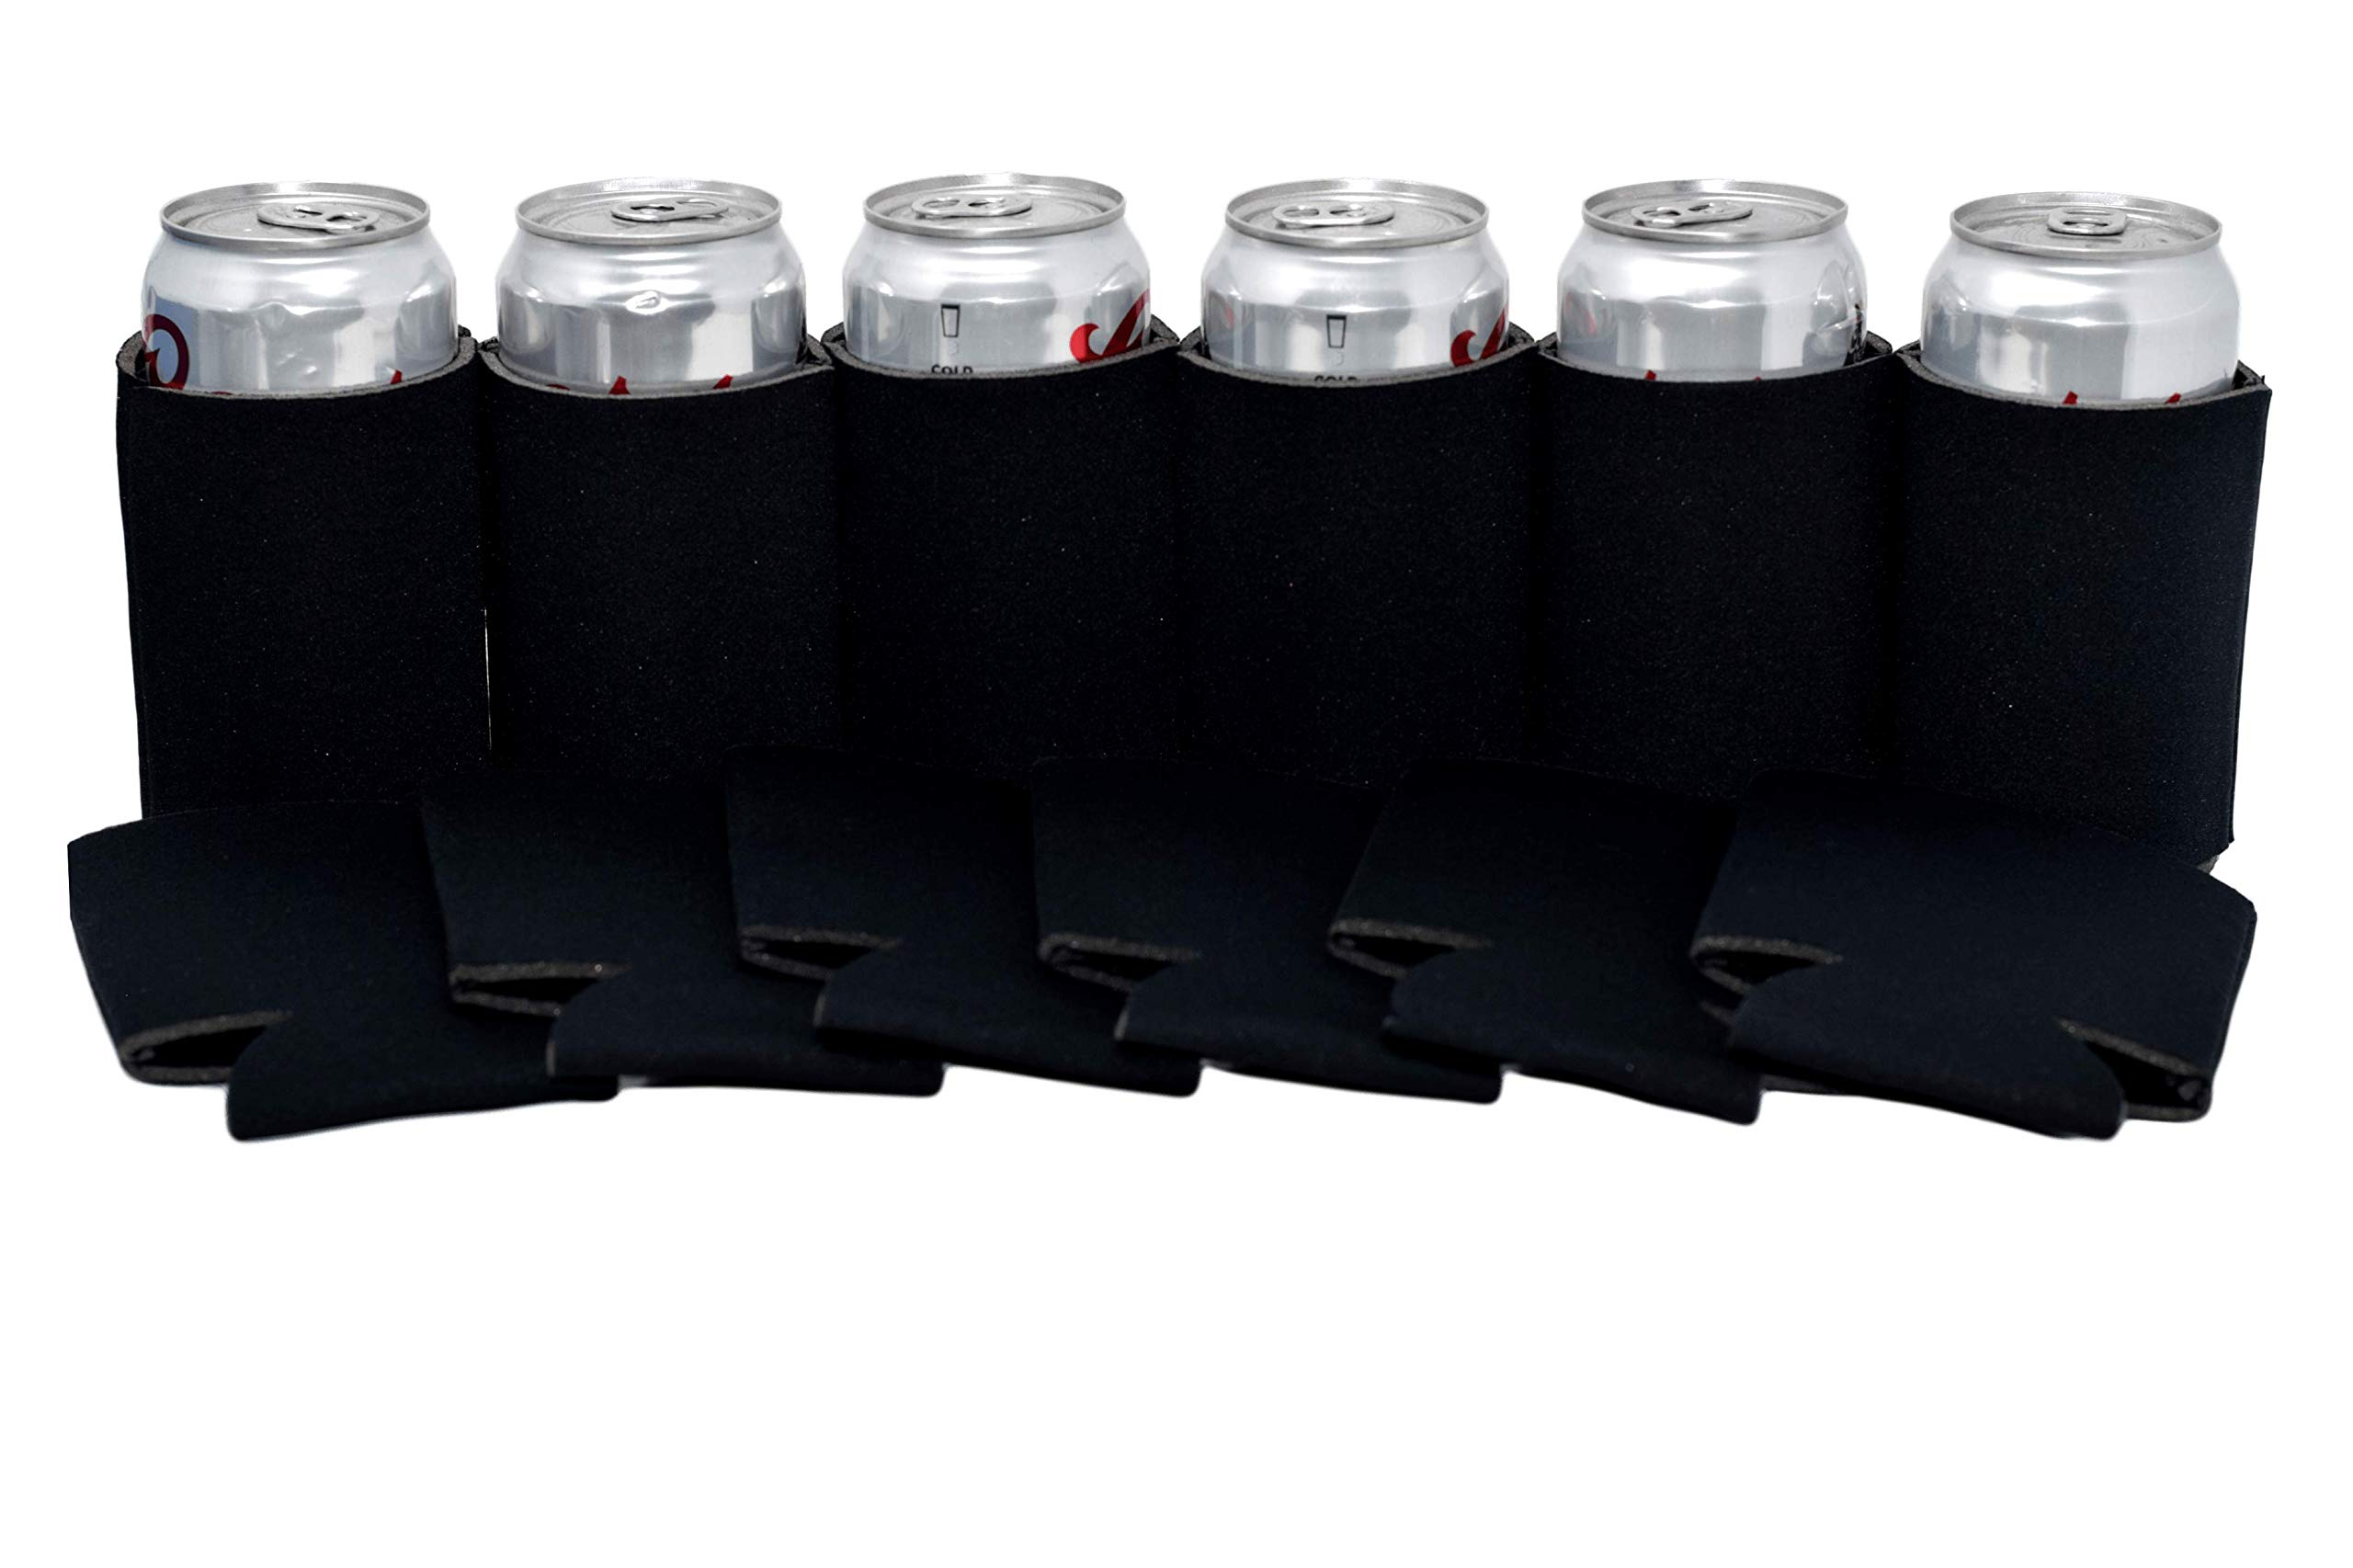 QualityPerfection 100 Black Party Drink Blank Can Coolers(12,25,50,100,200 Bulk Pack) Blank Beer,Soda Coolies Sleeves | Soft,Insulated Coolers | 30 Colors | Perfect DIY Projects,Holidays,Events